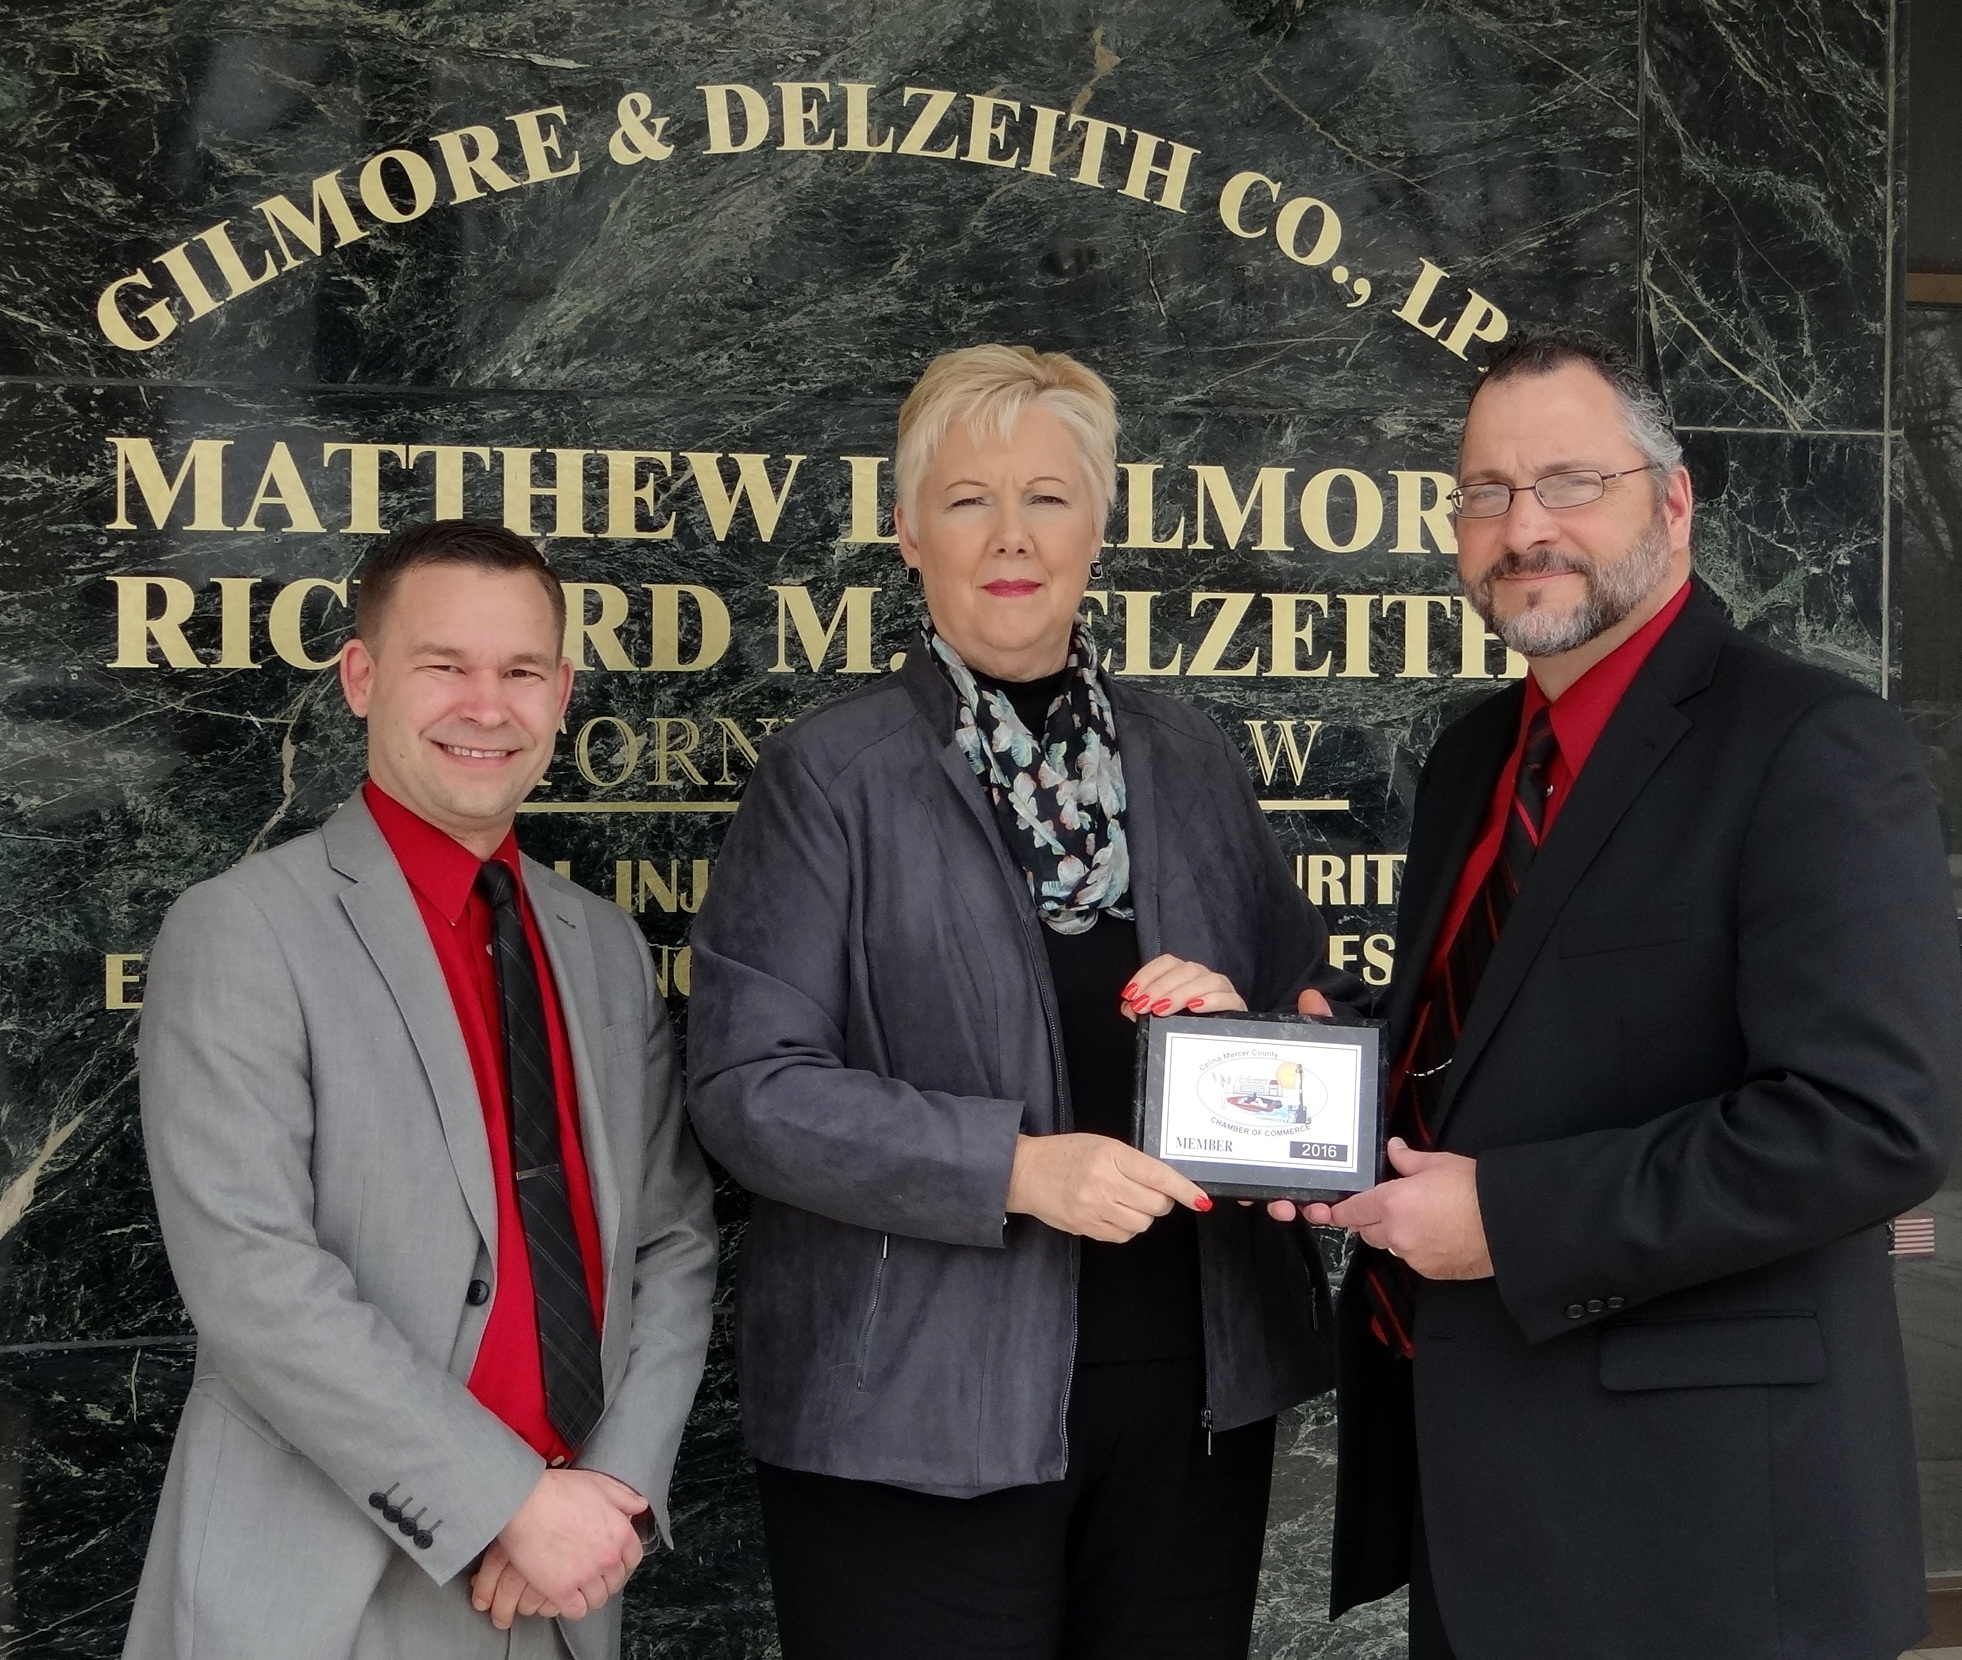 Celina Chamber welcomes Gilmore & Delzeith Co., LPA